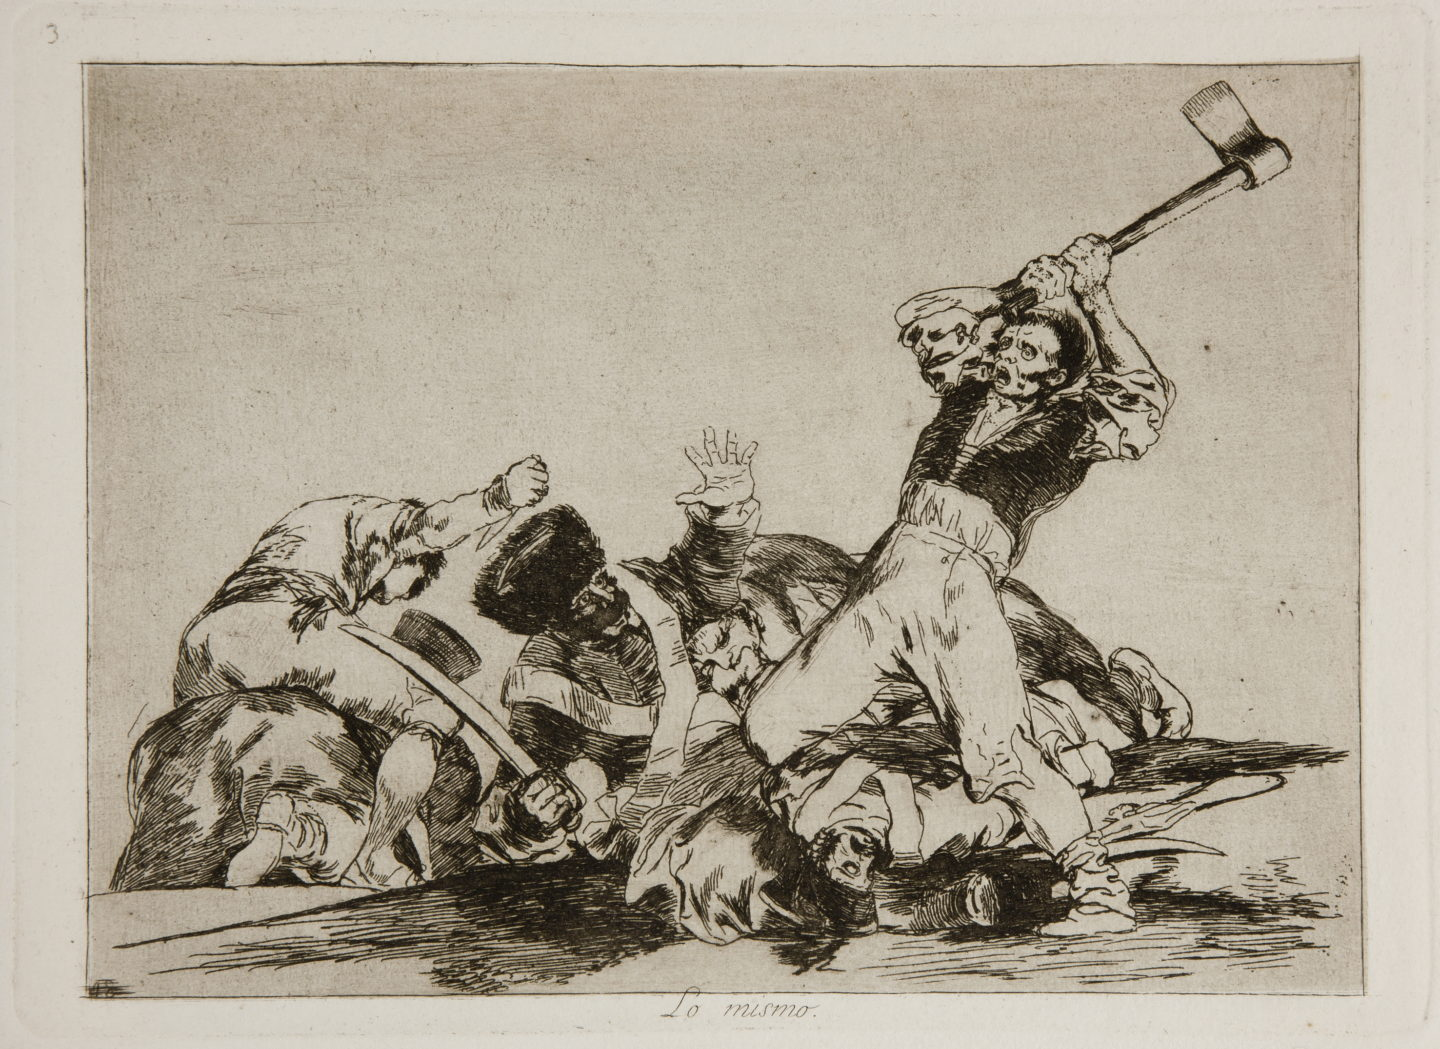 Francisco Goya, cykl Okropności wojny, To samo / from the The Disasters of War series, 1815